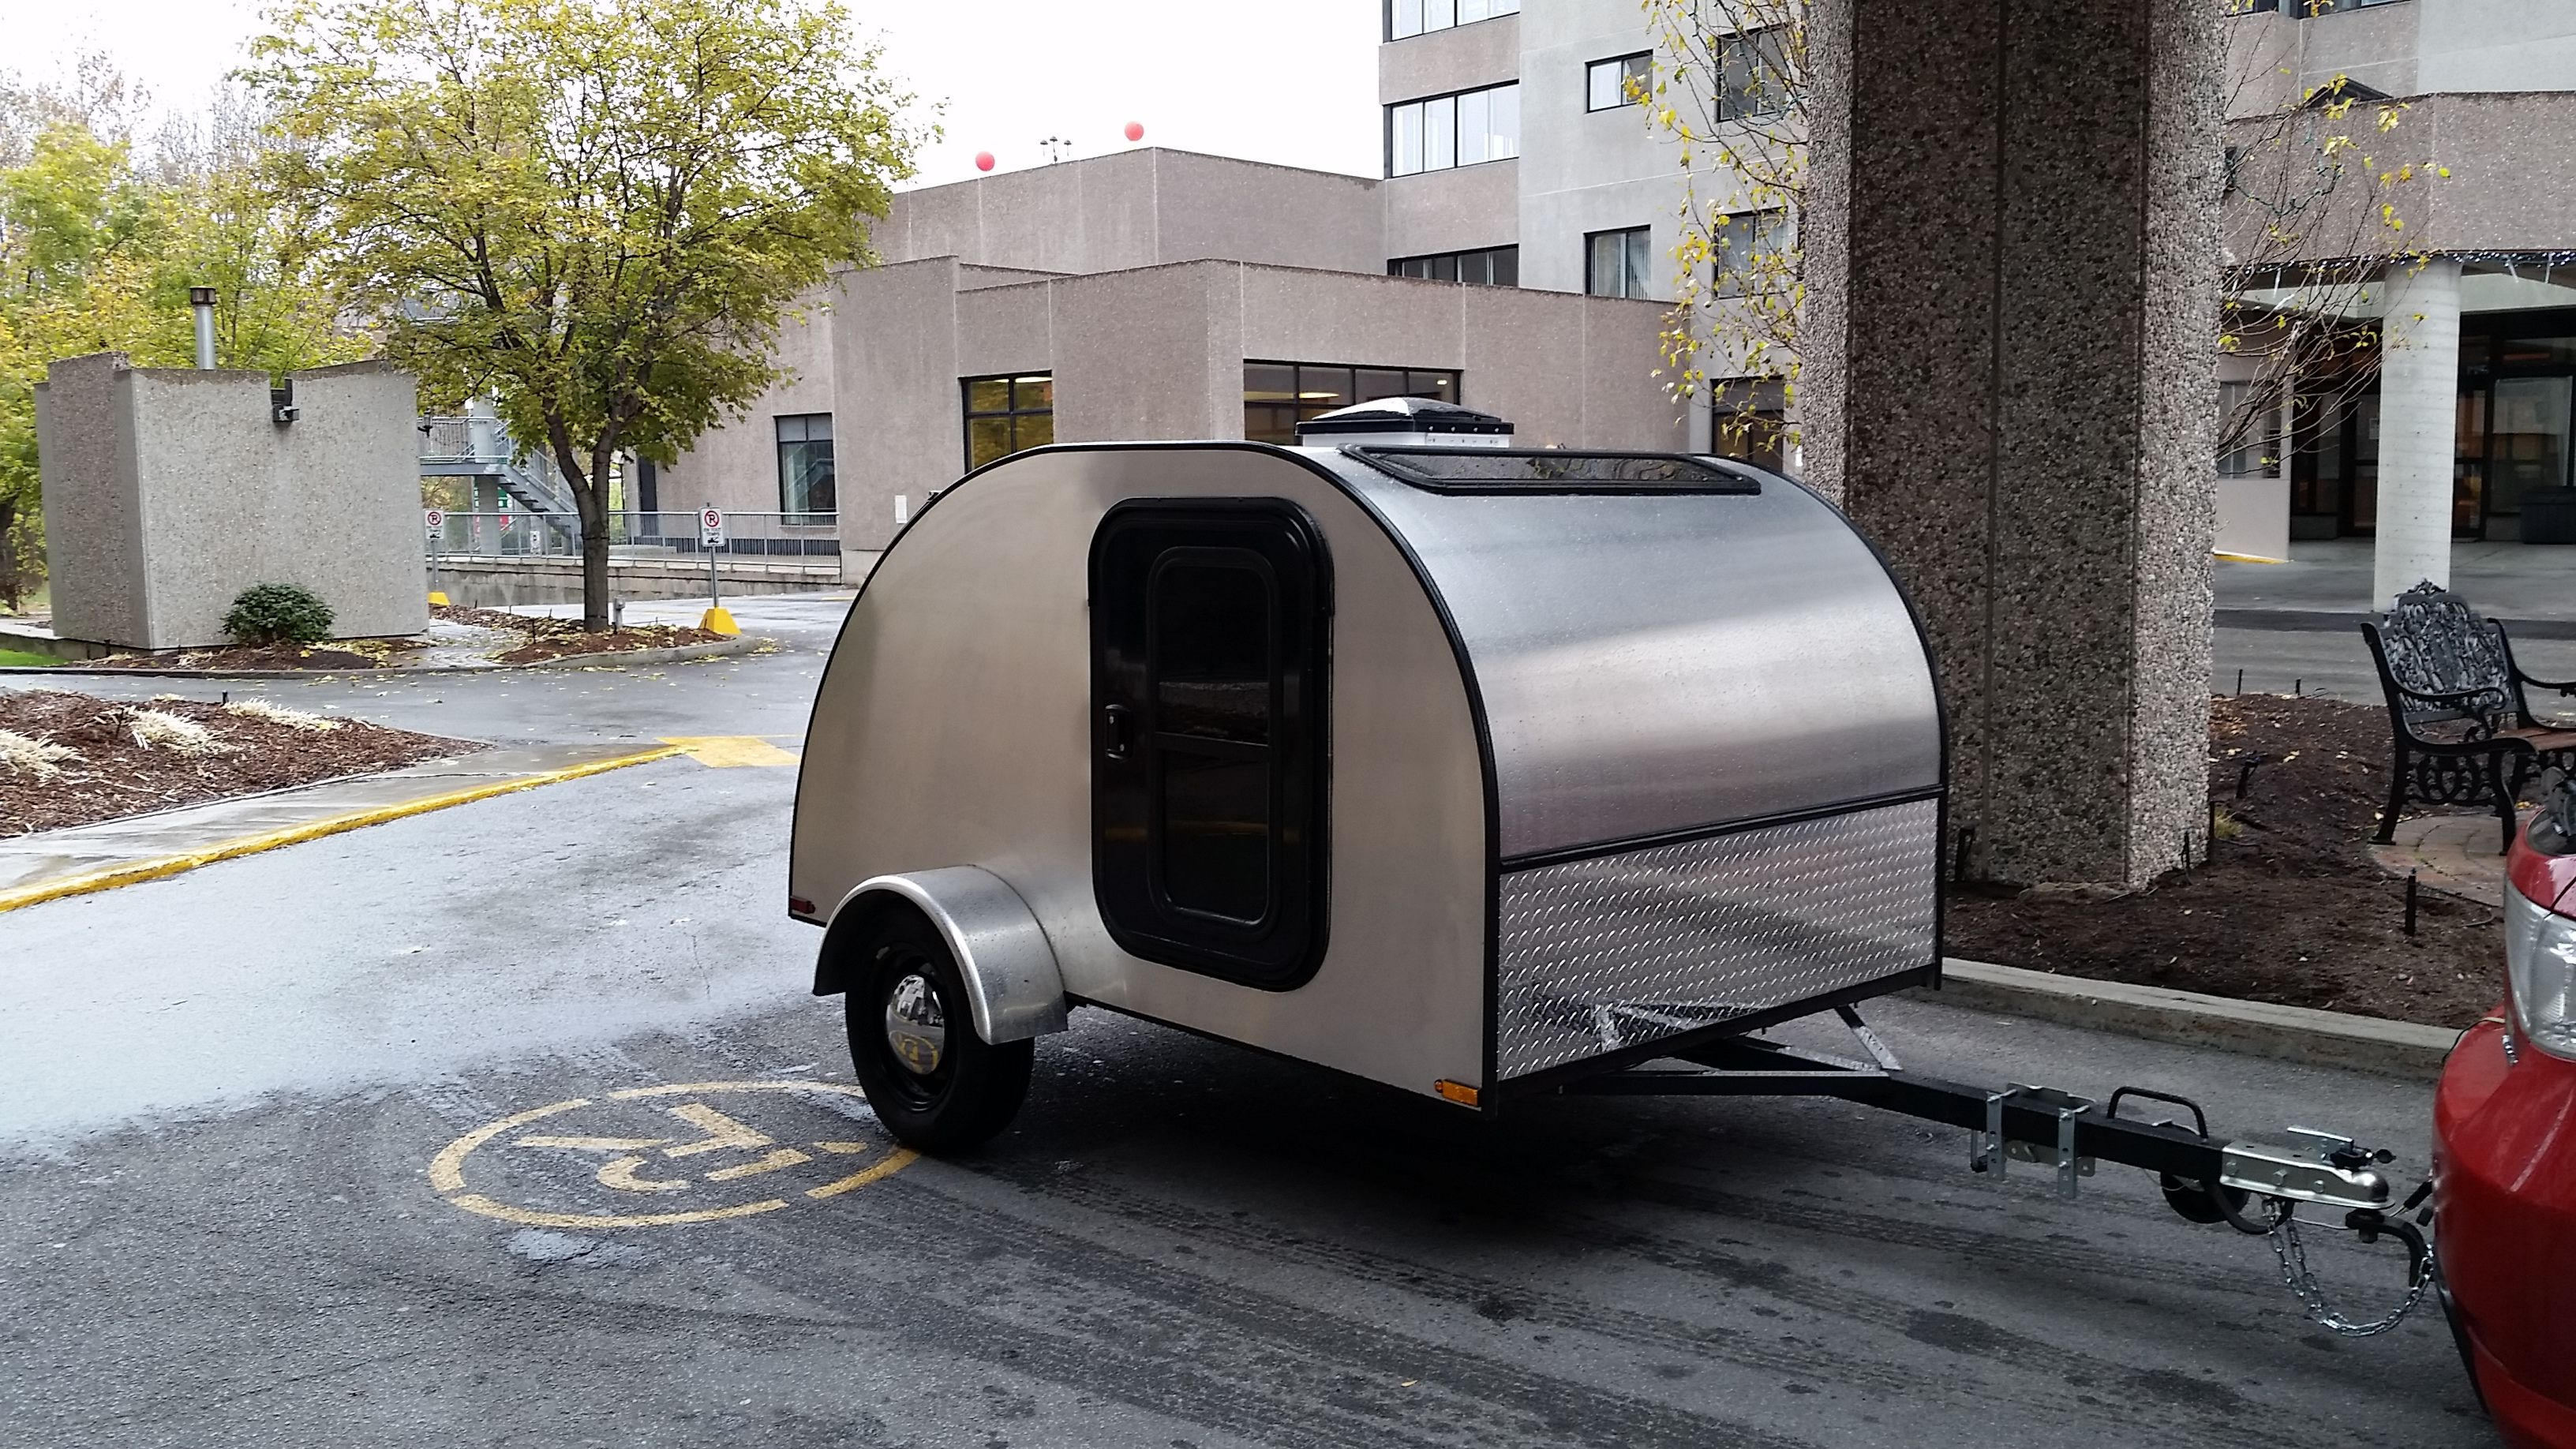 New Teardrop Trailer From Car Go Trailers In Canada Located In Quebec These Guys Build A Quality Trail Teardrop Trailer Camping Teardrop Trailer Small Trailer